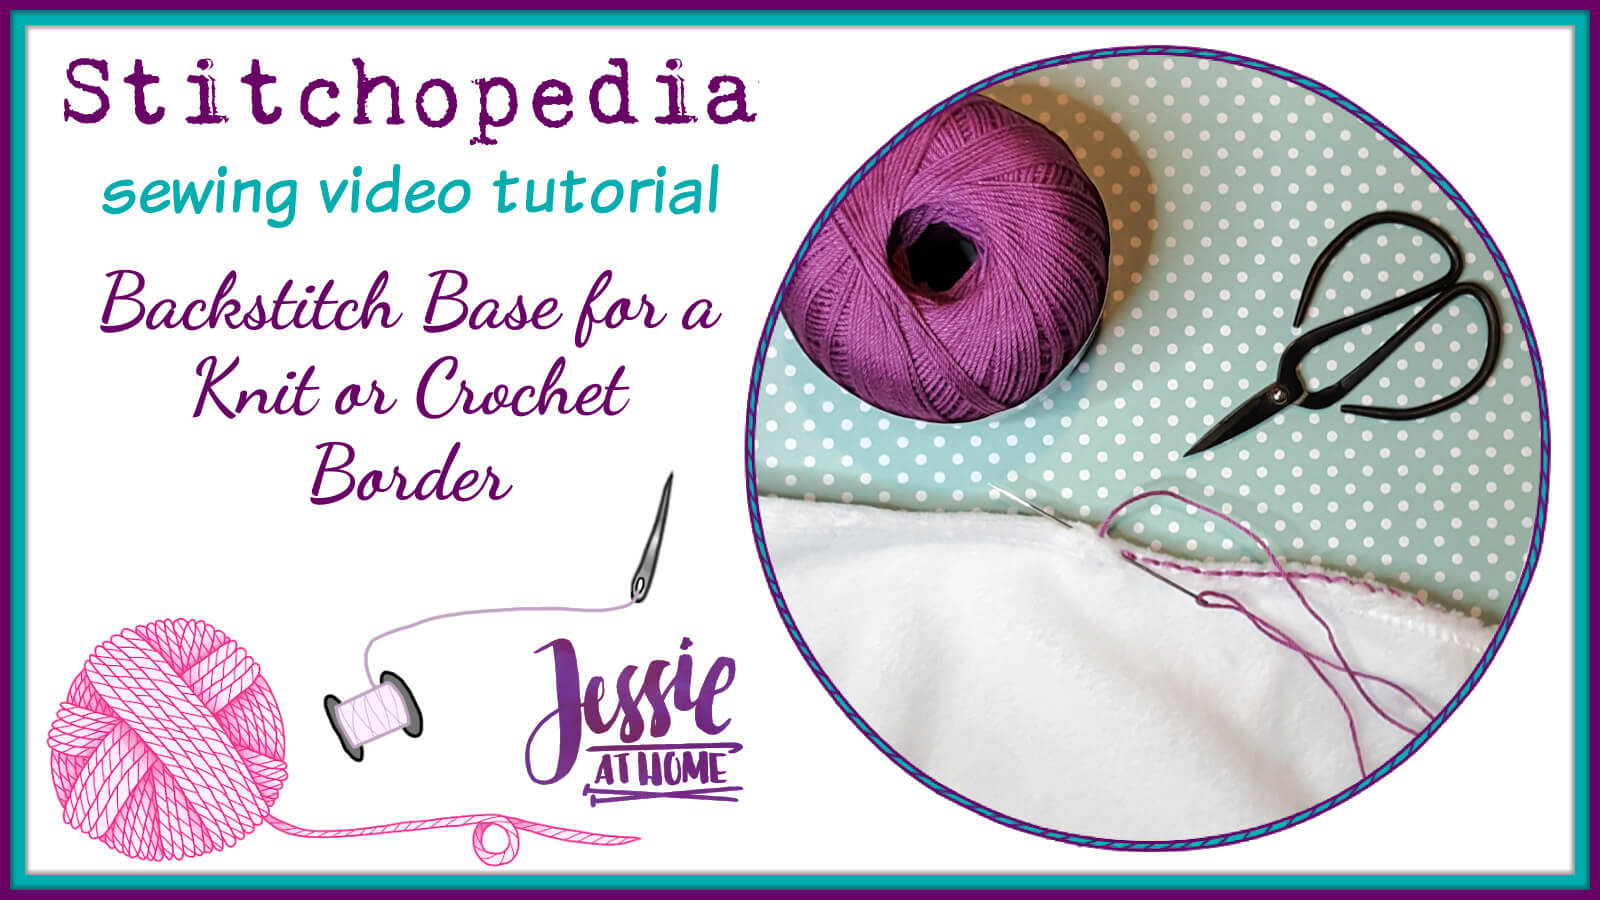 Backstitch Base for a Knit or Crochet Border Stitchopedia Video Tutorial - Cover